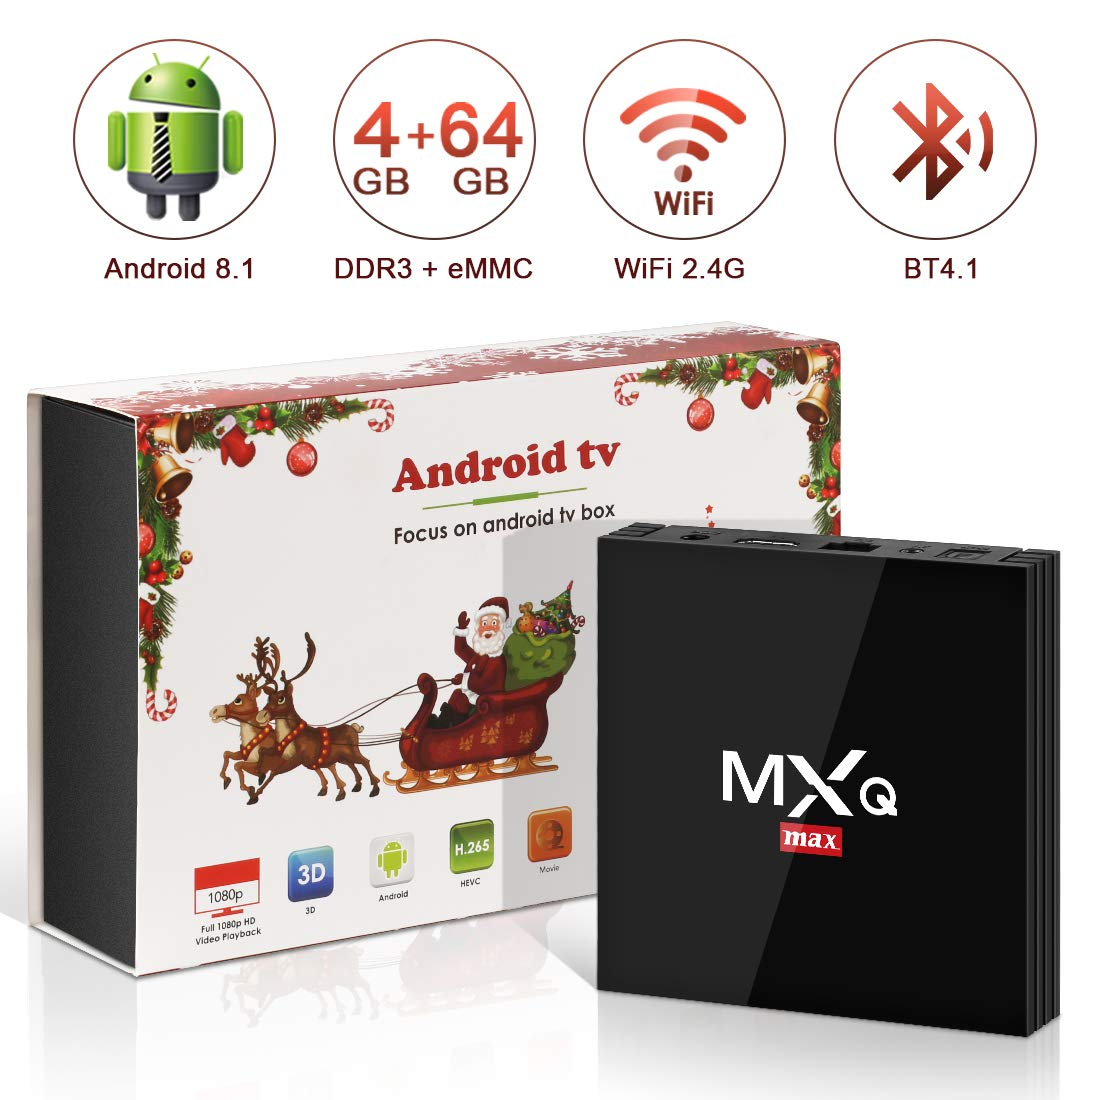 Android 8.1 TV Box, Superpow Smart TV Box Quad Core 4GB RAM+64GB ROM, BT 4.1, 4K*2K UHD H.265, HDMI, USB*3, WiFi Media Player, Android Set-Top Box